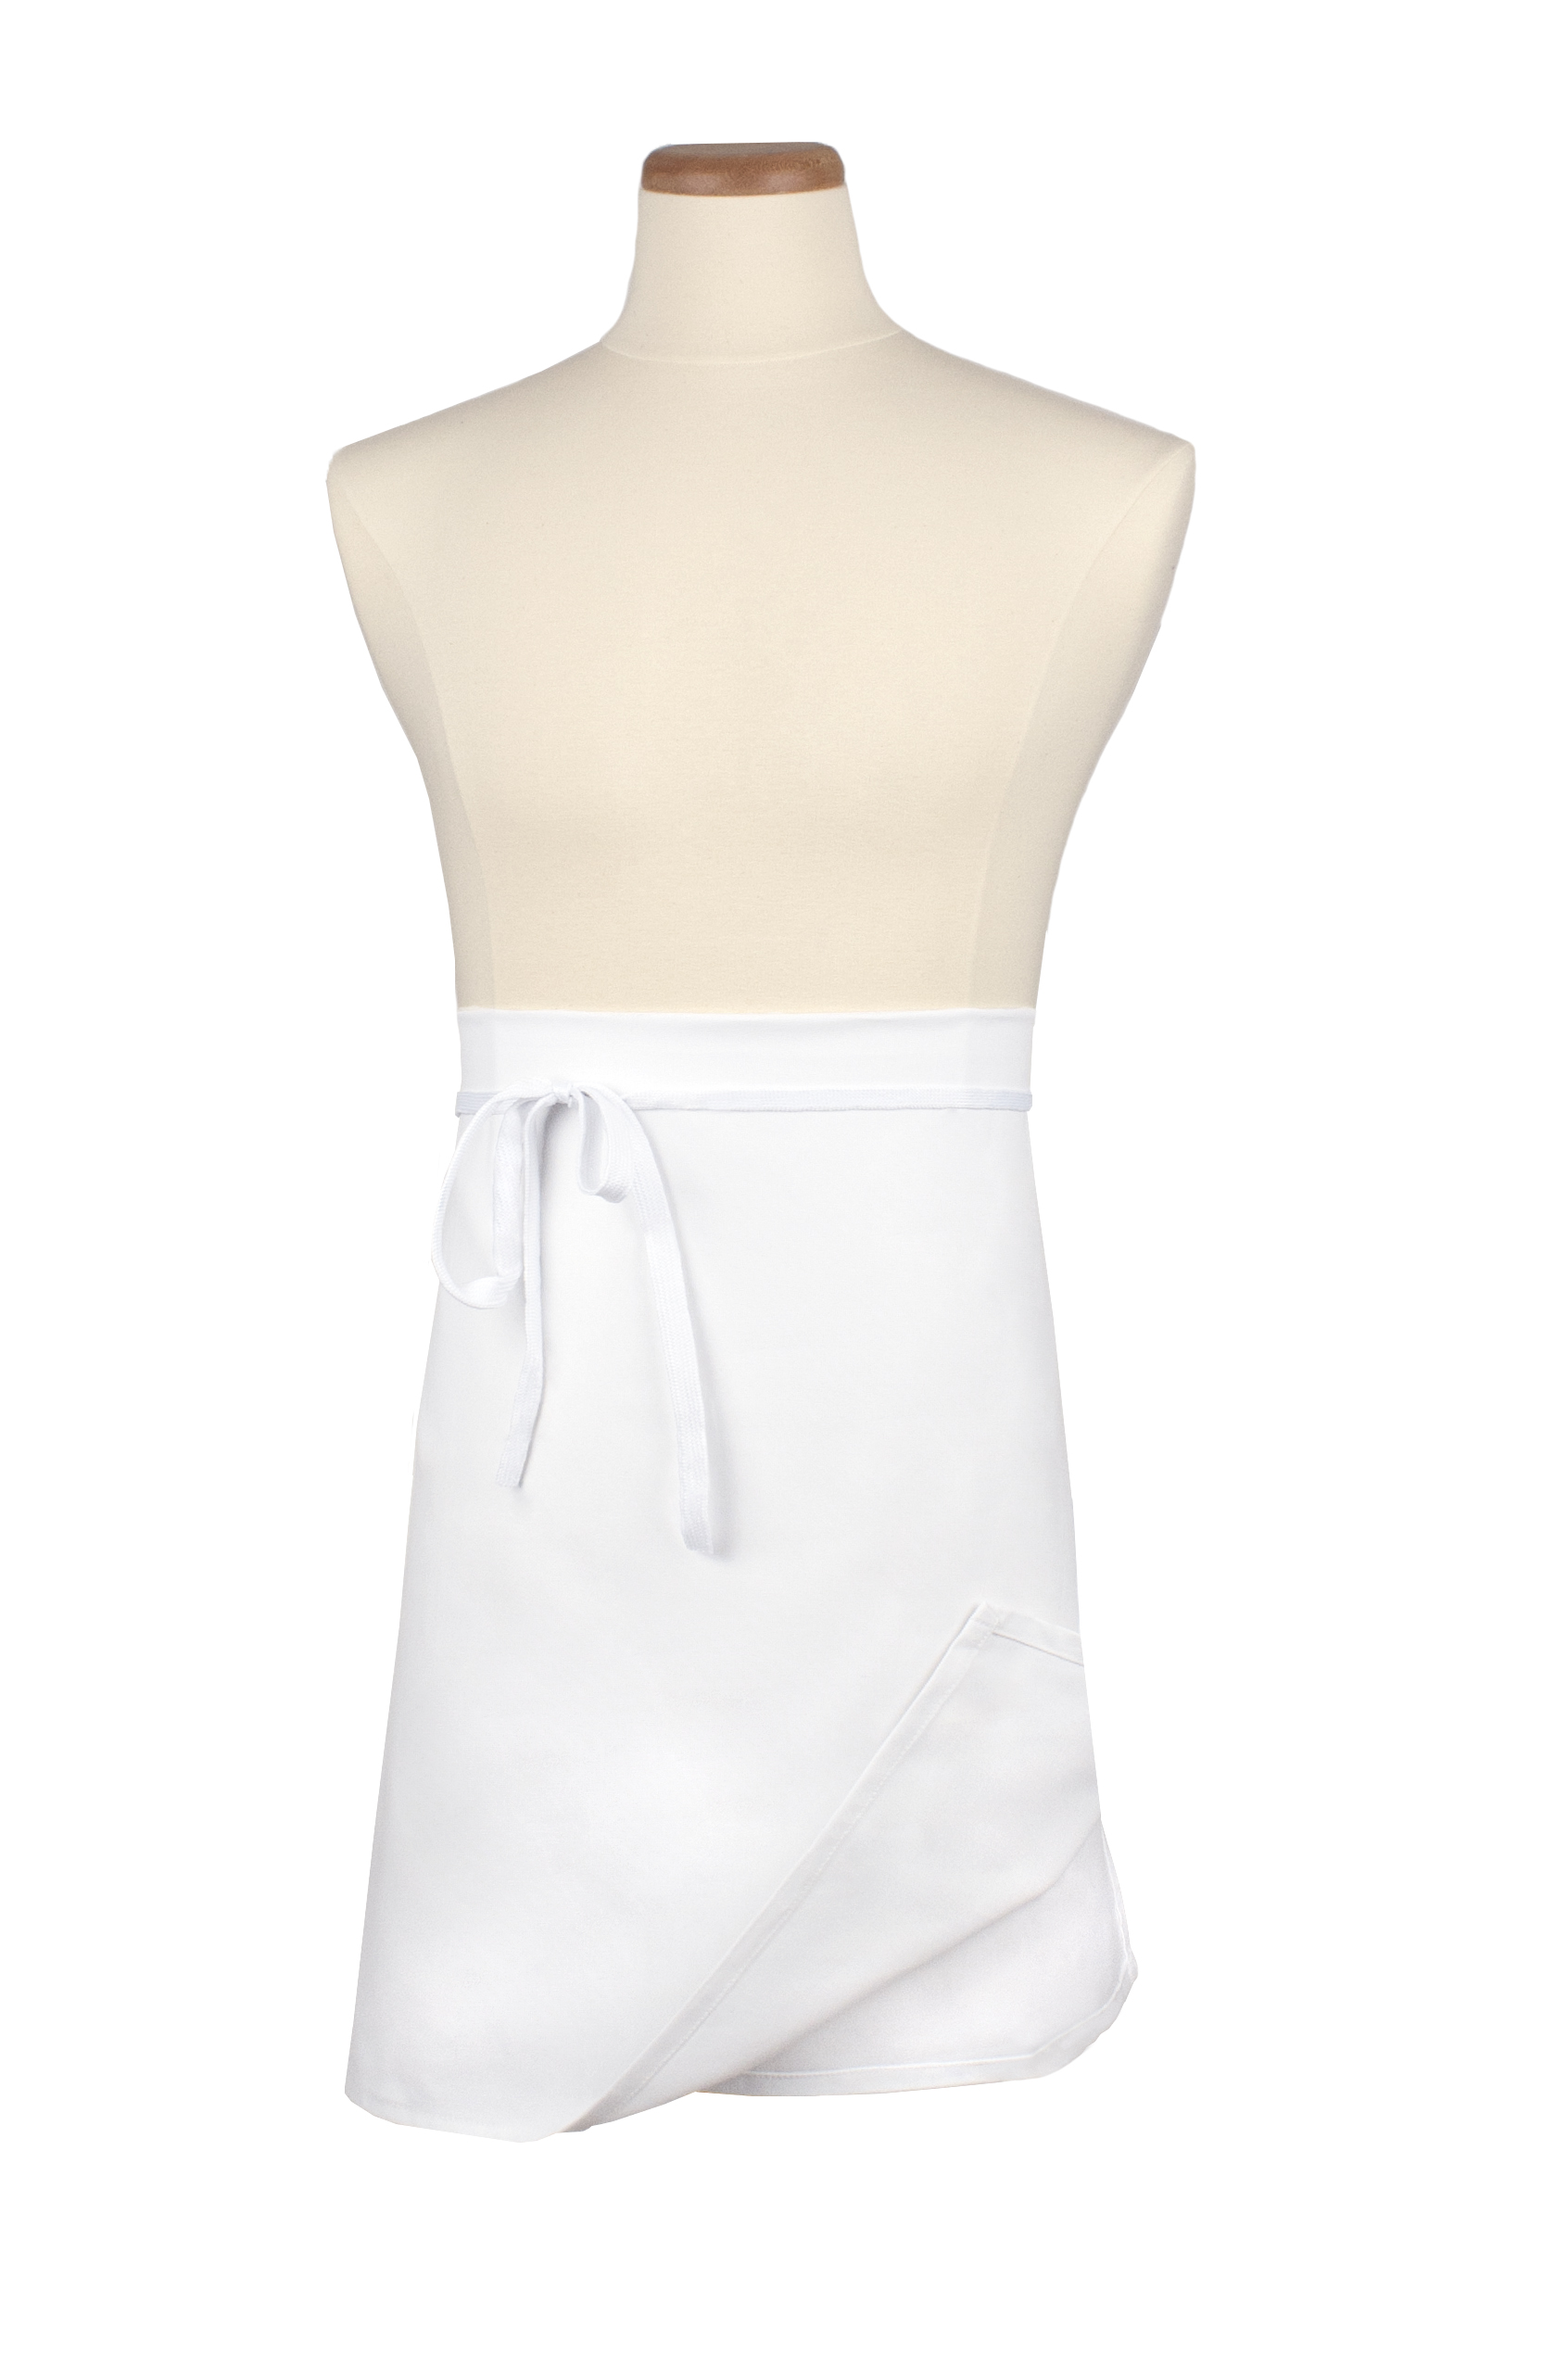 4-Way Reversible Waist Apron, No Pocket